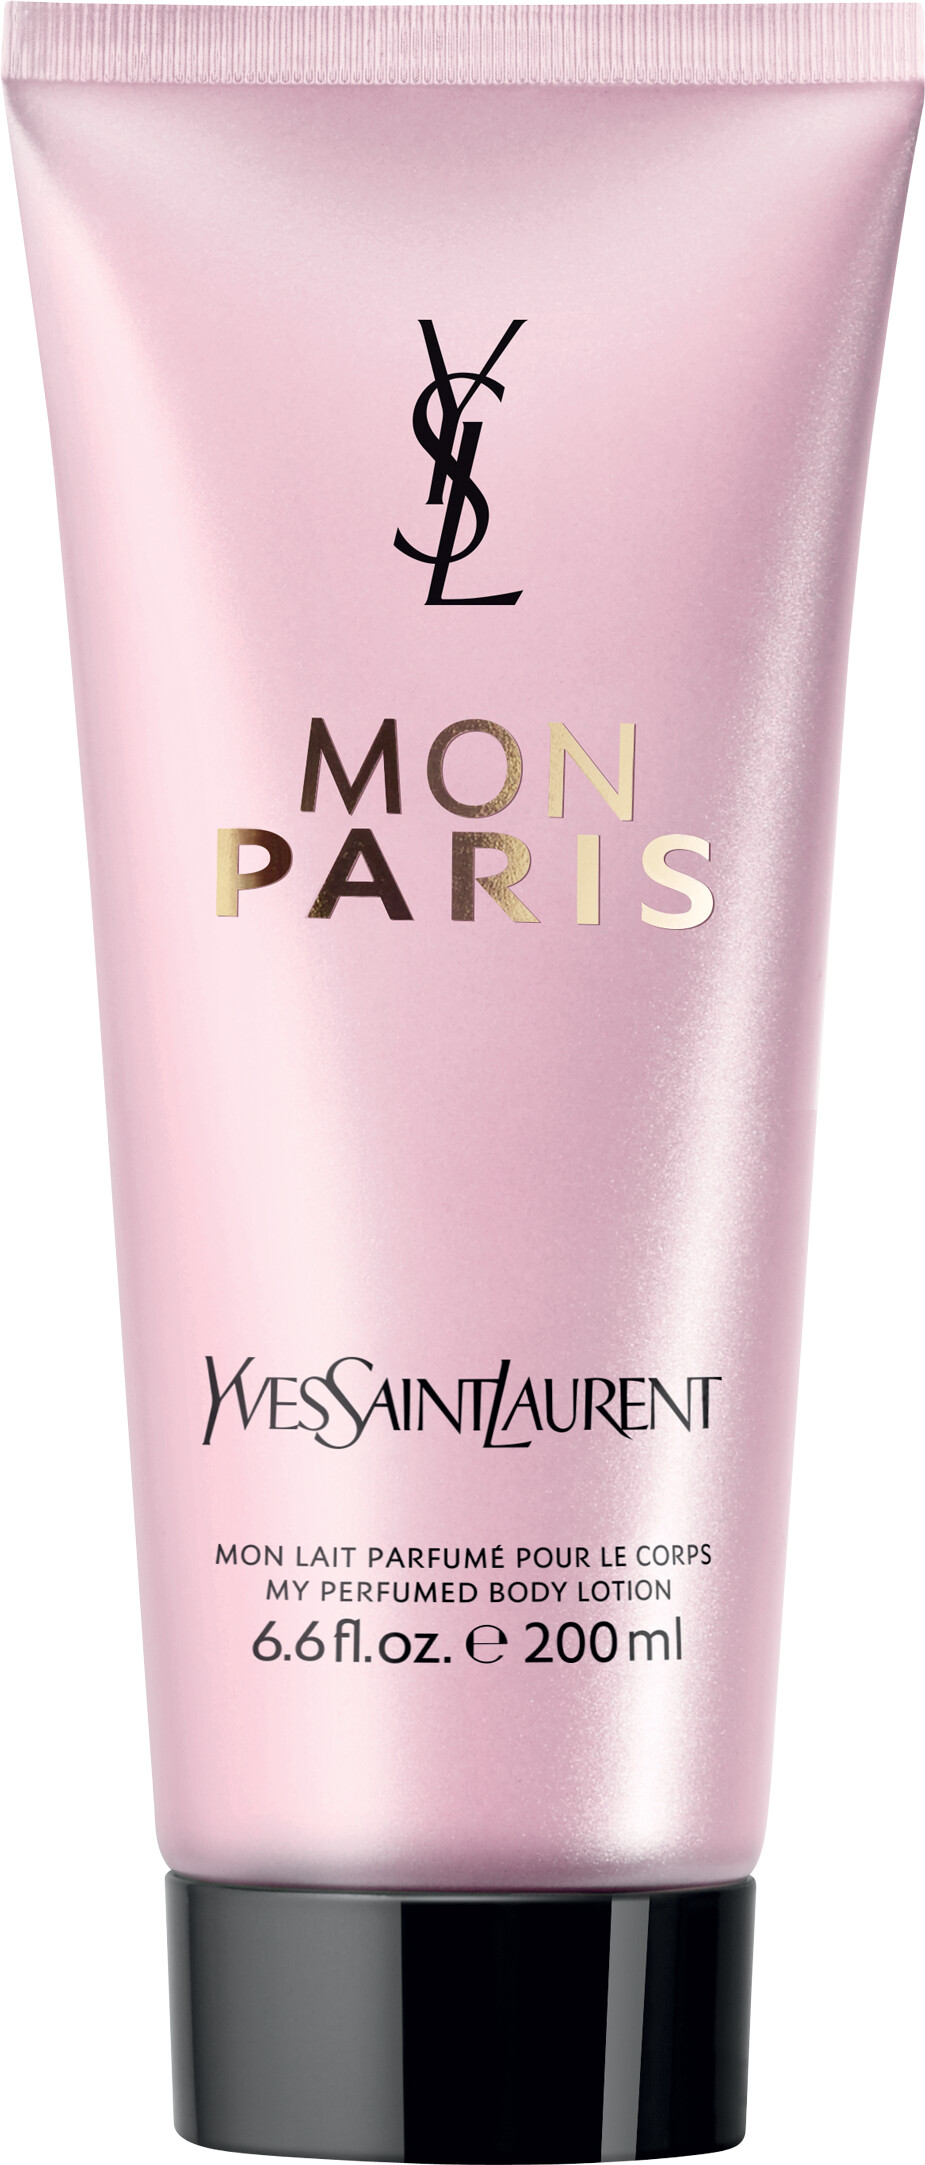 9a1dda56705 Yves Saint Laurent Mon Paris Perfumed Body Lotion